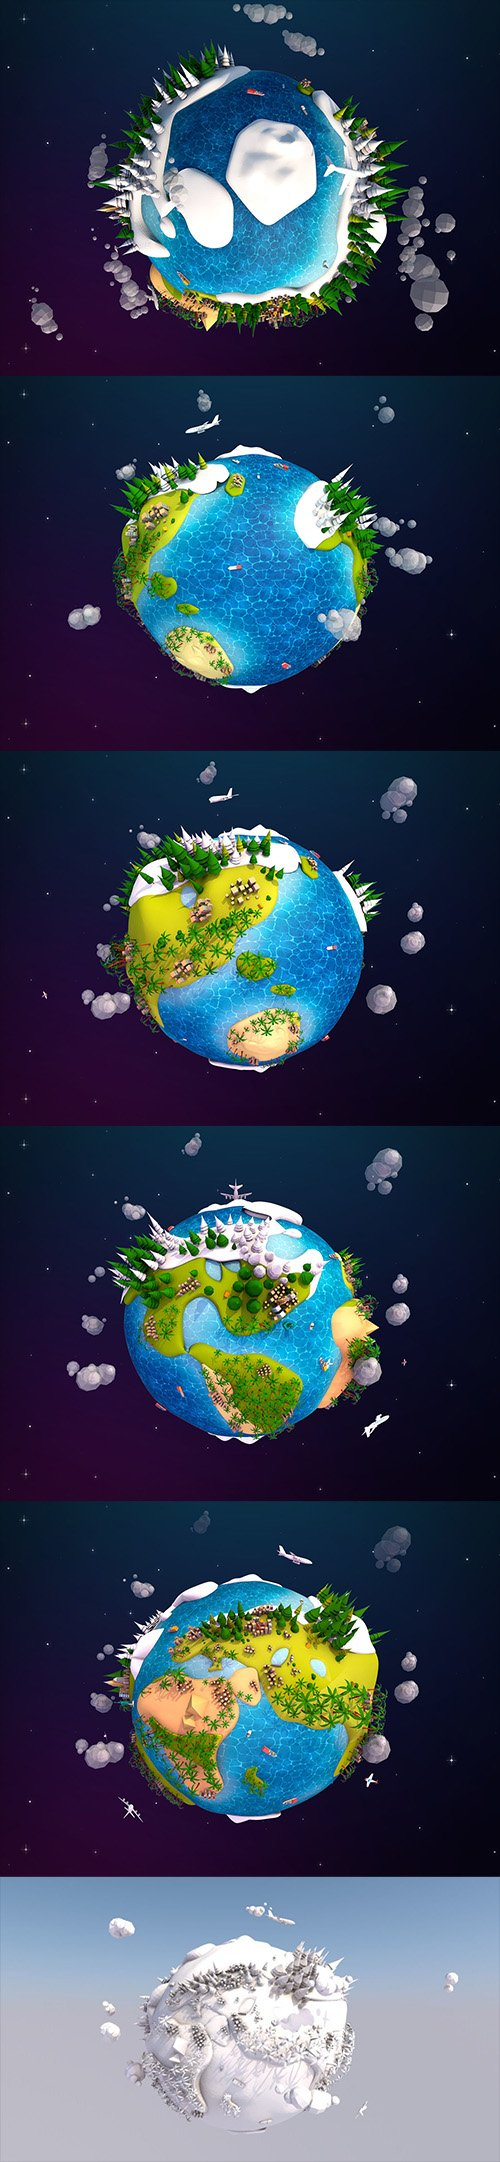 Cartoon Lowpoly Earth Planet 2 Low-poly 3D model